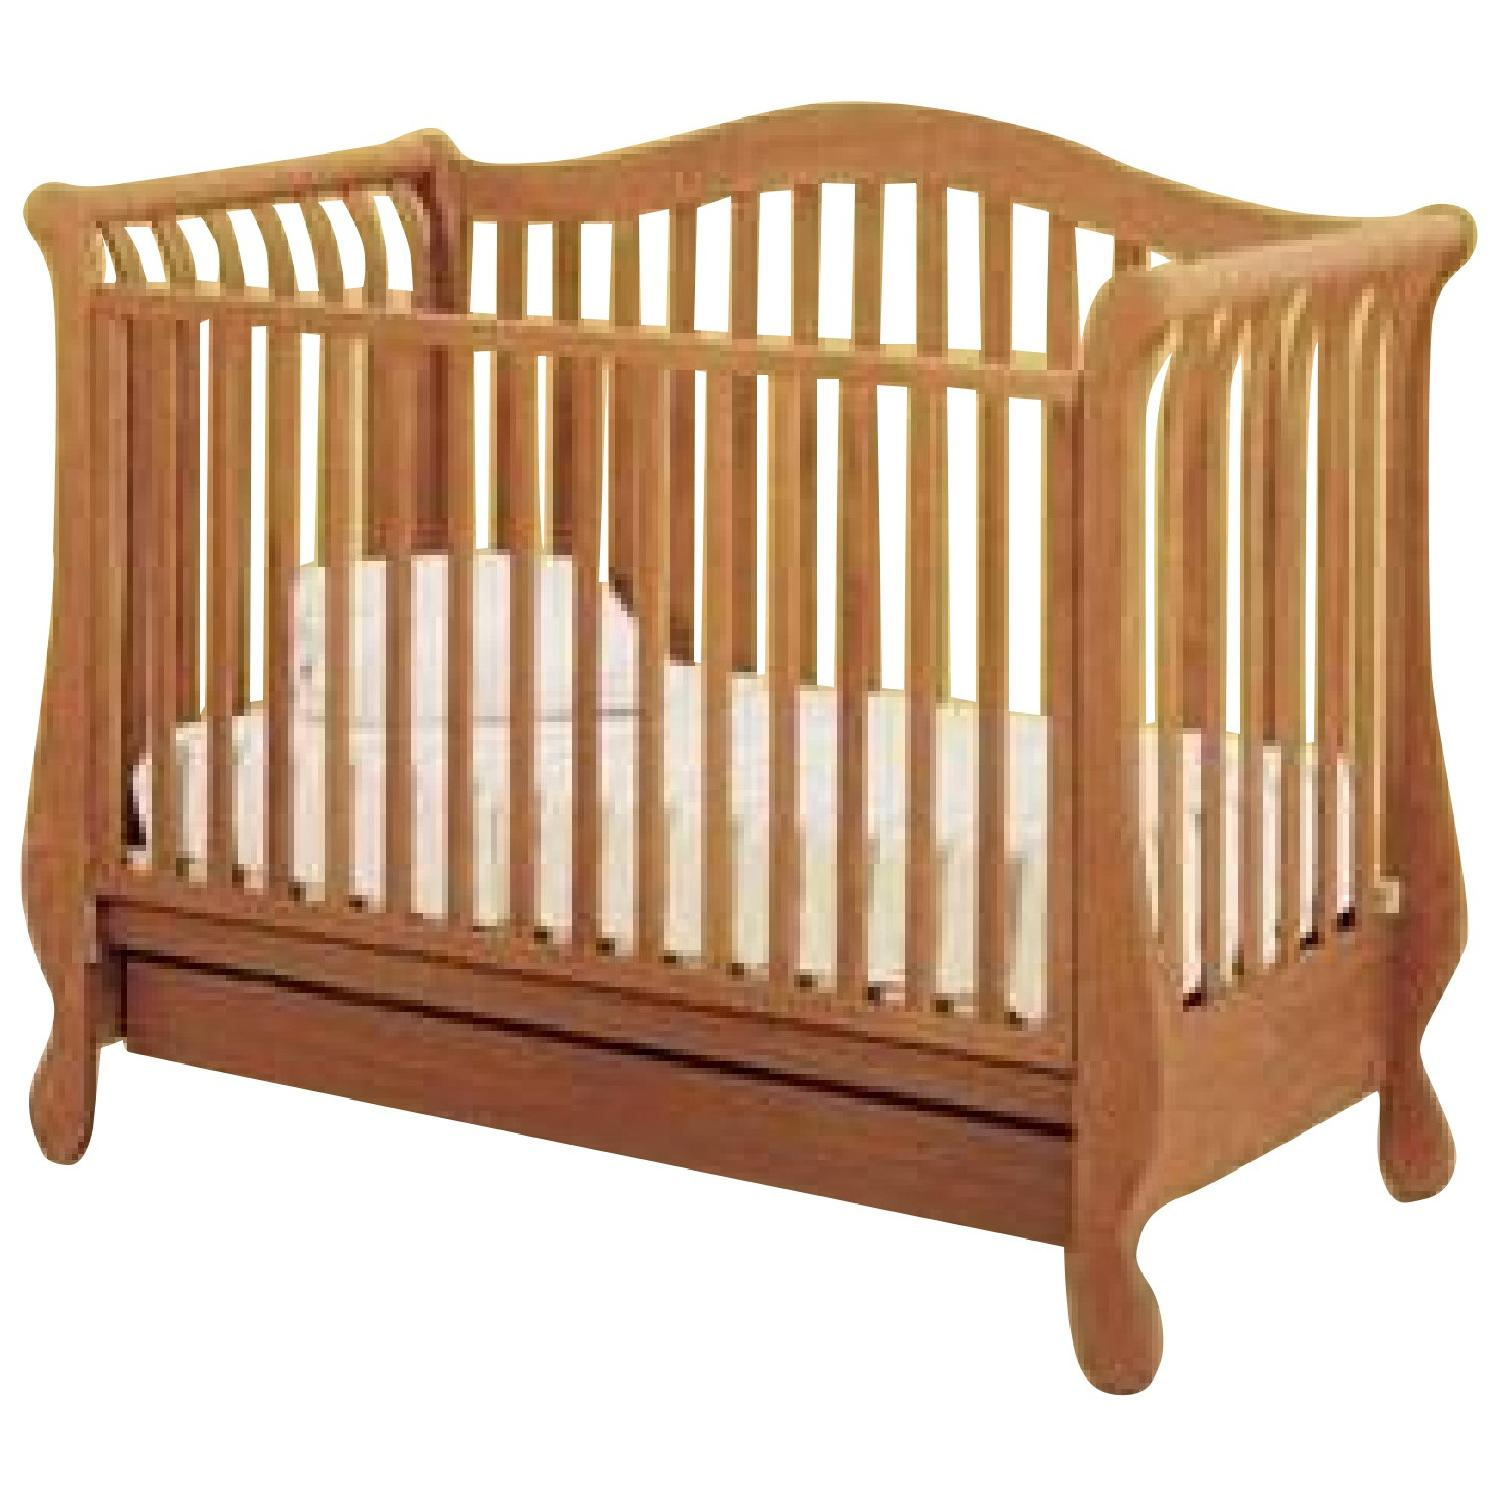 Pali Design Forever 3-in-1 Crib w/ Linen Drawer